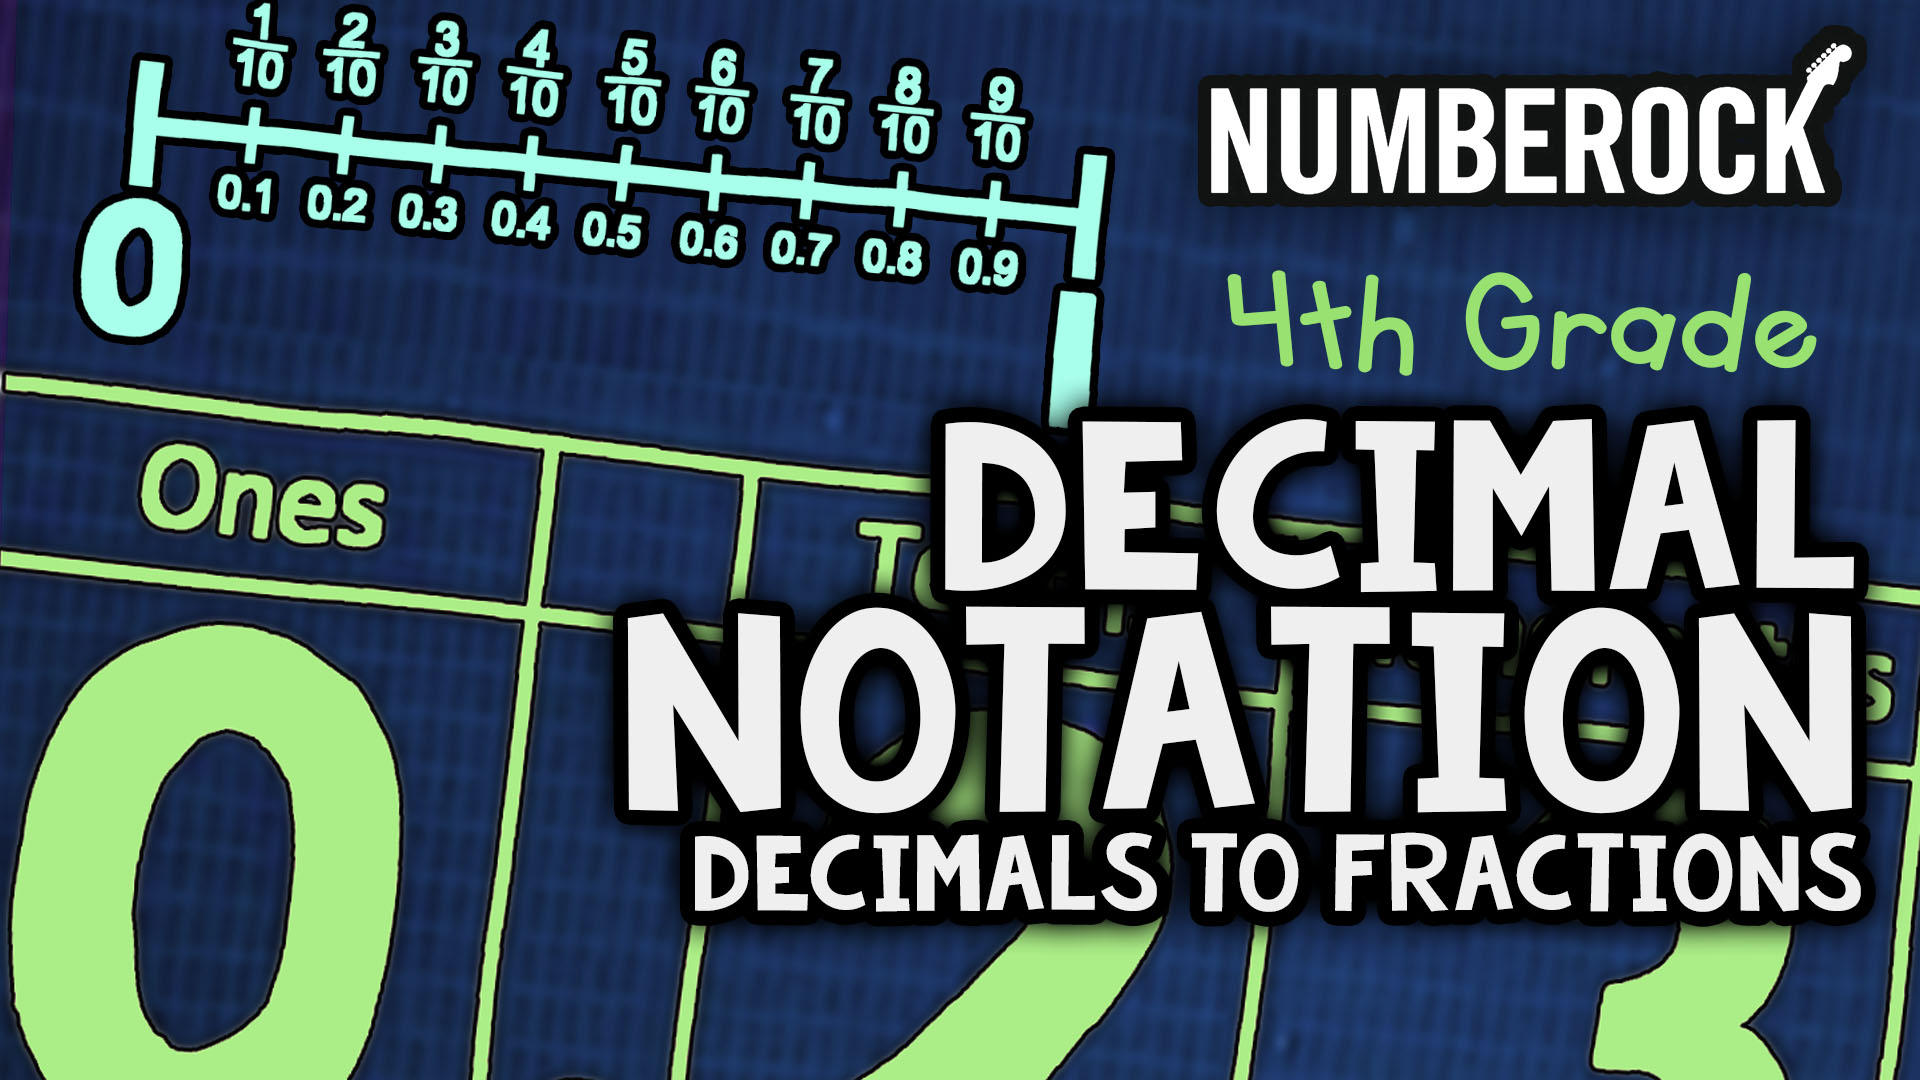 Decimals to Fractions Song | 4th Grade Decimal Notation Video